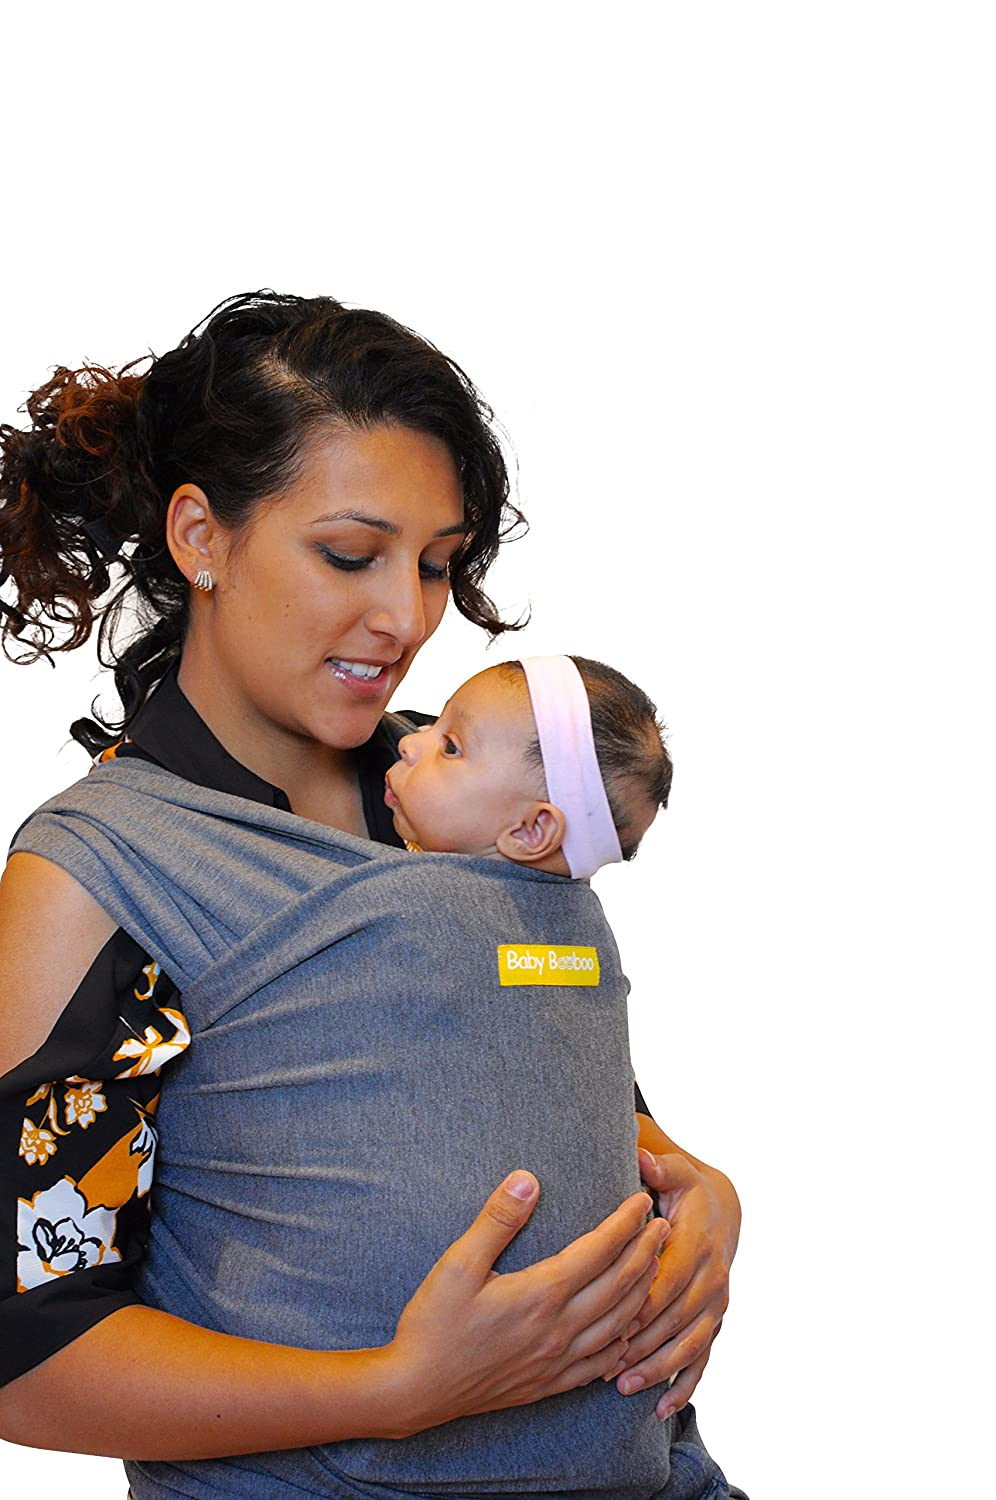 404d3de9668 Baby Booboo Sling Wrap - Soft Baby Sling Carrier - Plus Size - Soft Newborn  Ergo Carrier - Great Premium Baby Shower Gift (Charcoal Grey Large)  ...